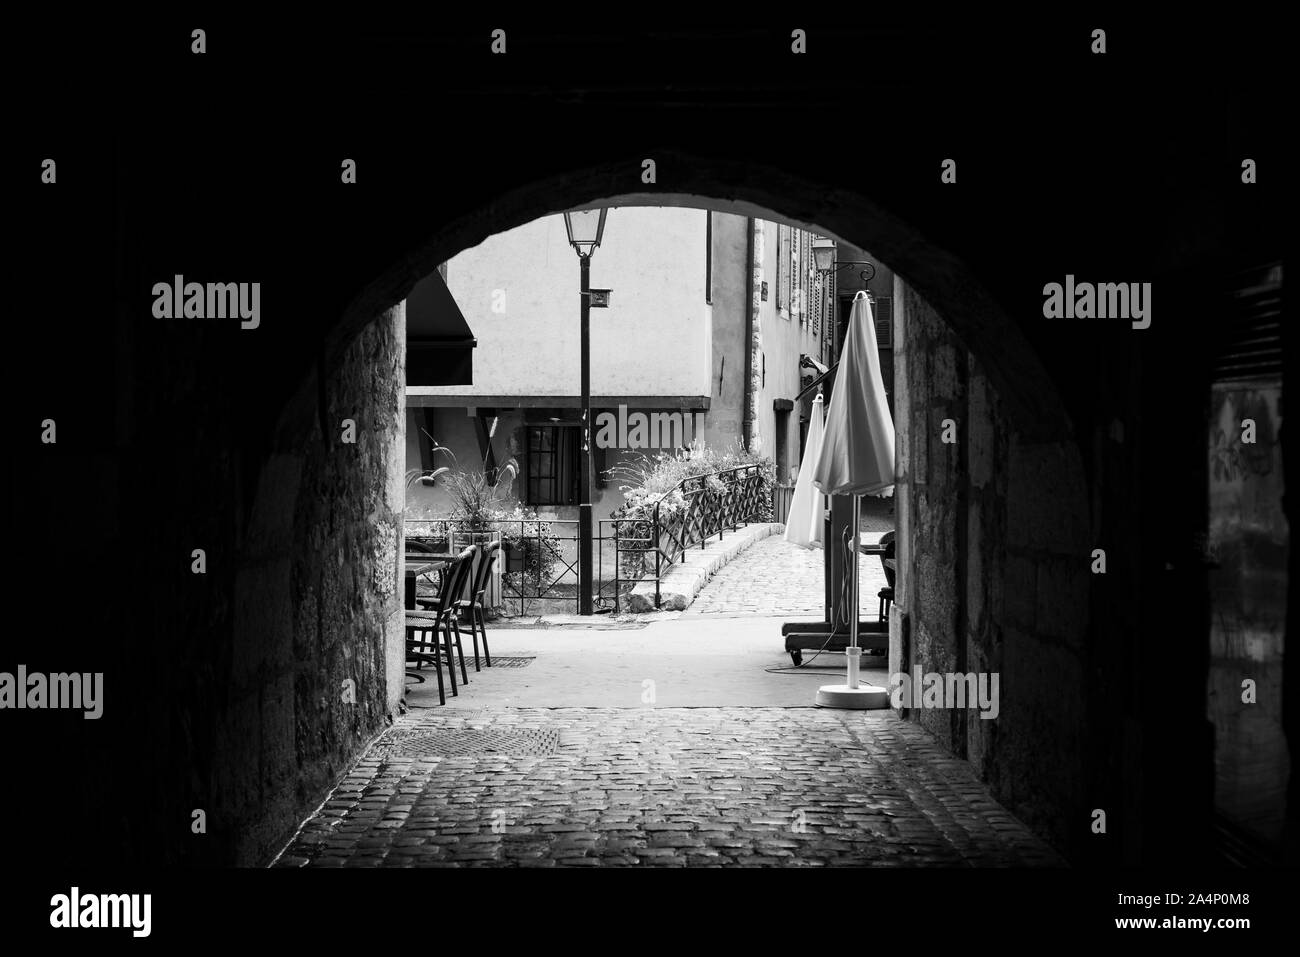 Black and white image of Archway in Annecy, France Stock Photo